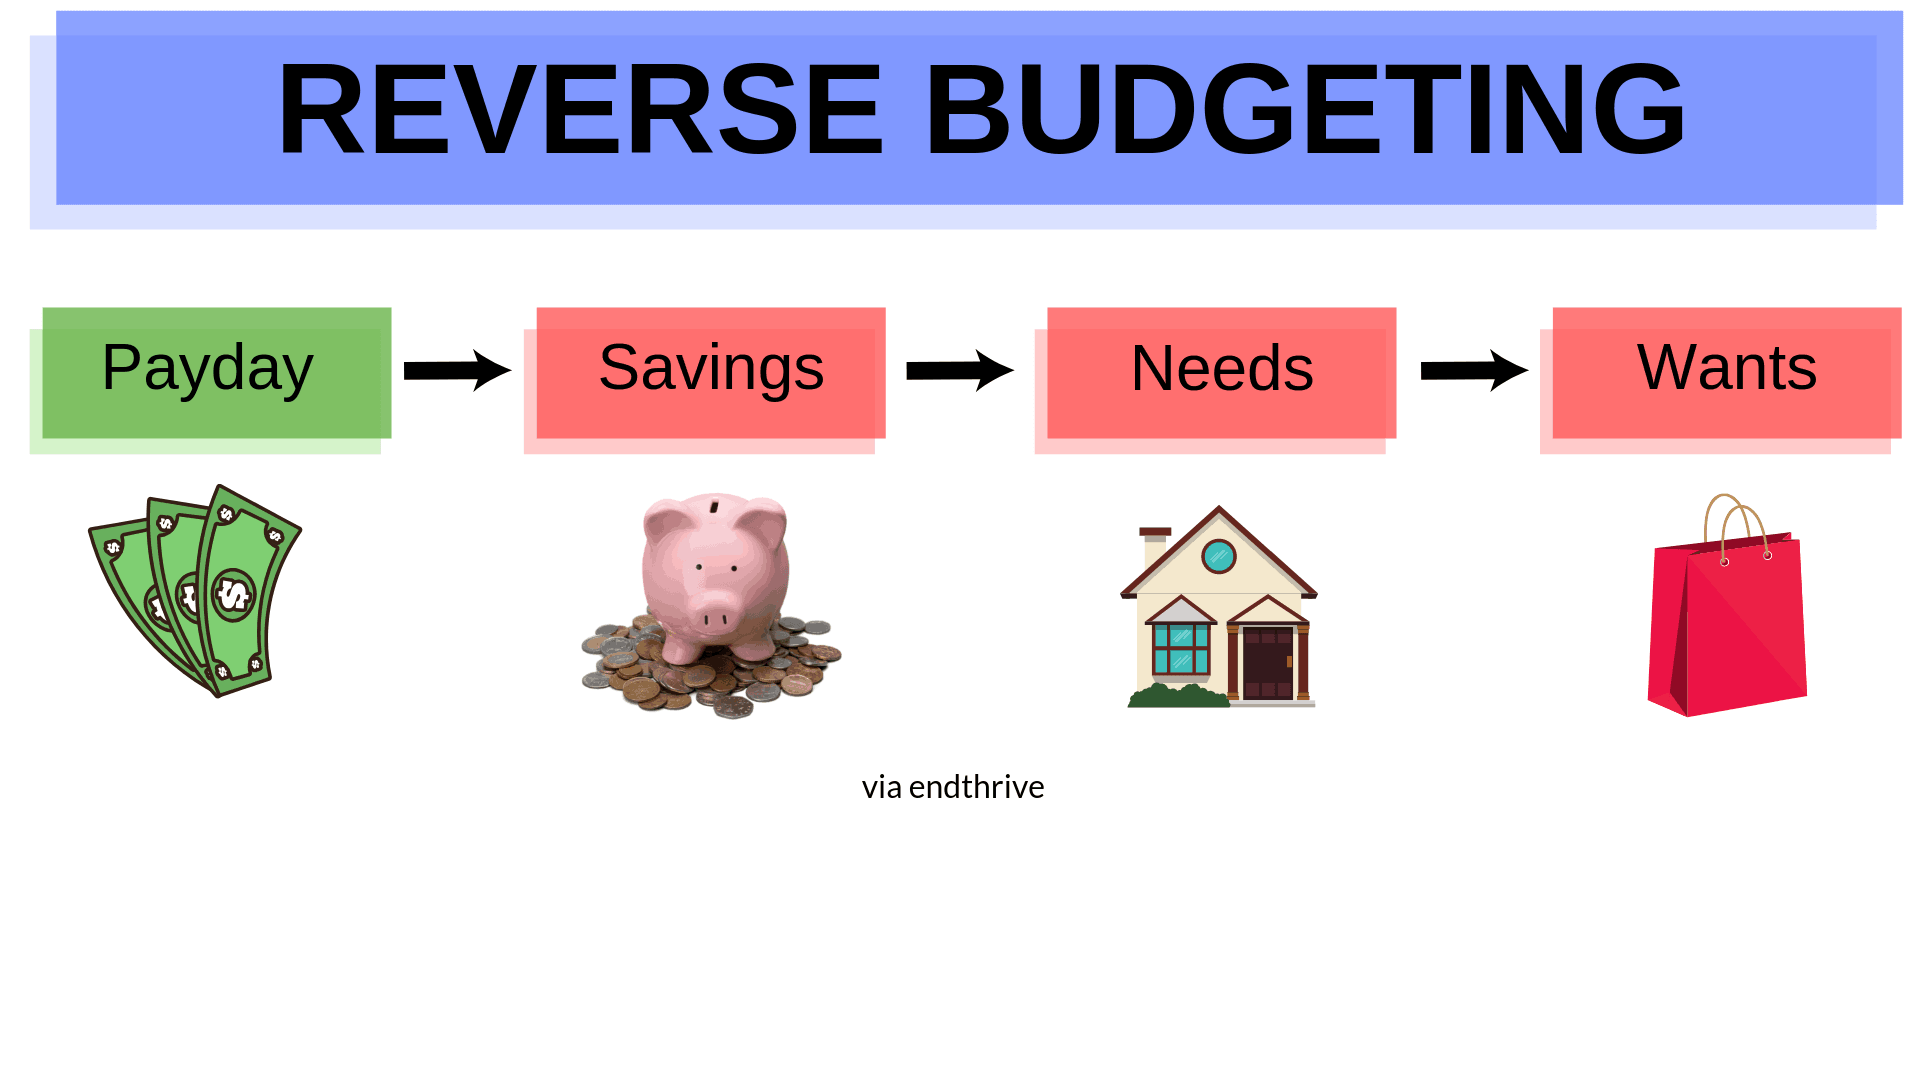 Example of Reverse Budgeting